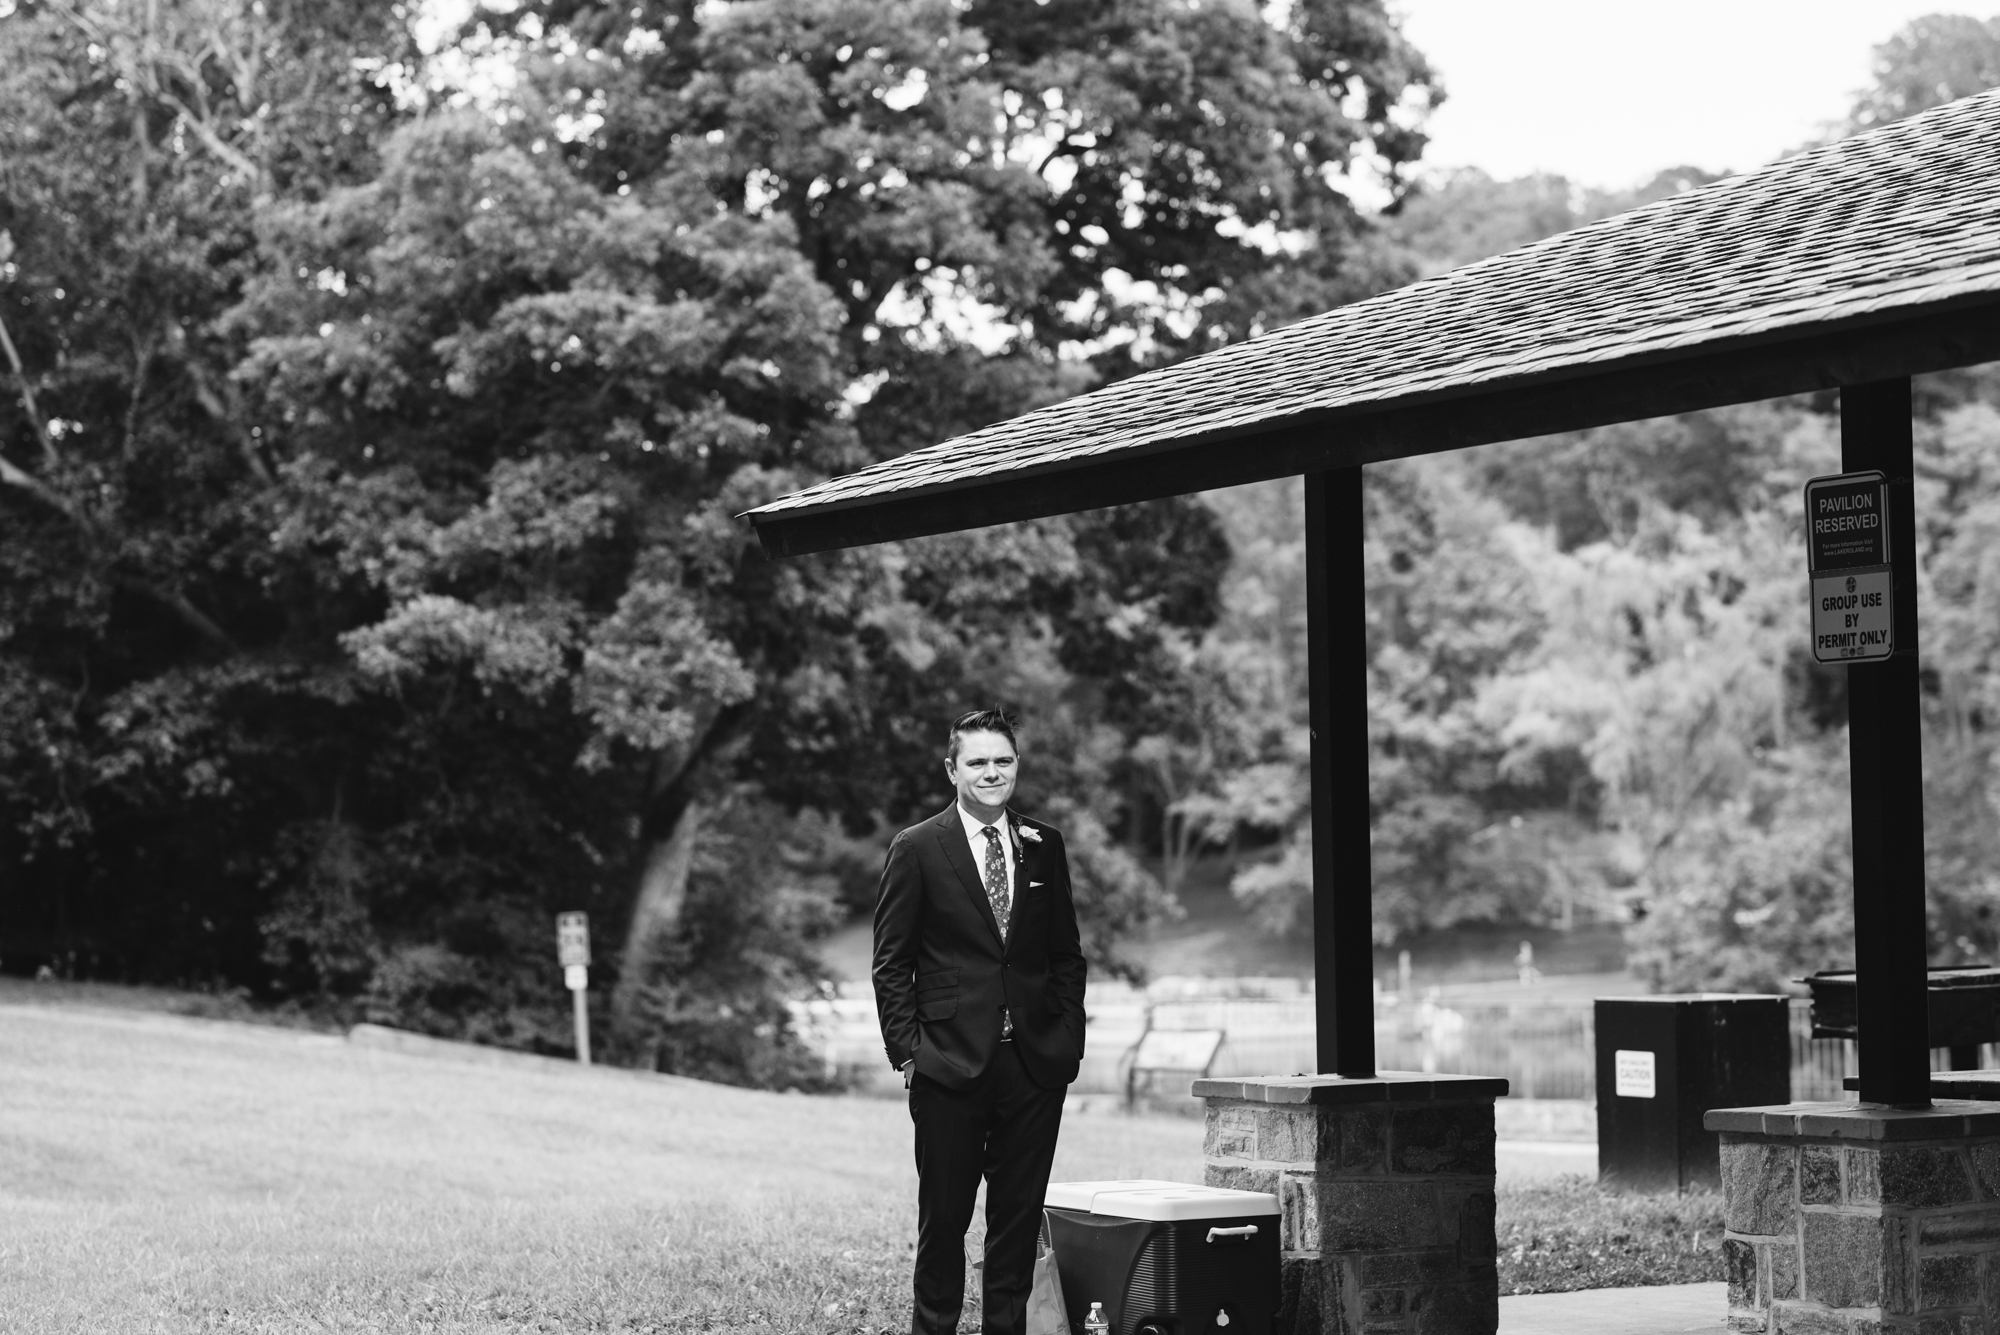 Pop-up Ceremony, Outdoor Wedding, Casual, Simple, Lake Roland, Baltimore, Maryland Wedding Photographer, Laid Back, Groom Waiting for Bride, Camp Wedding, Suit Supply, Black and White Photo